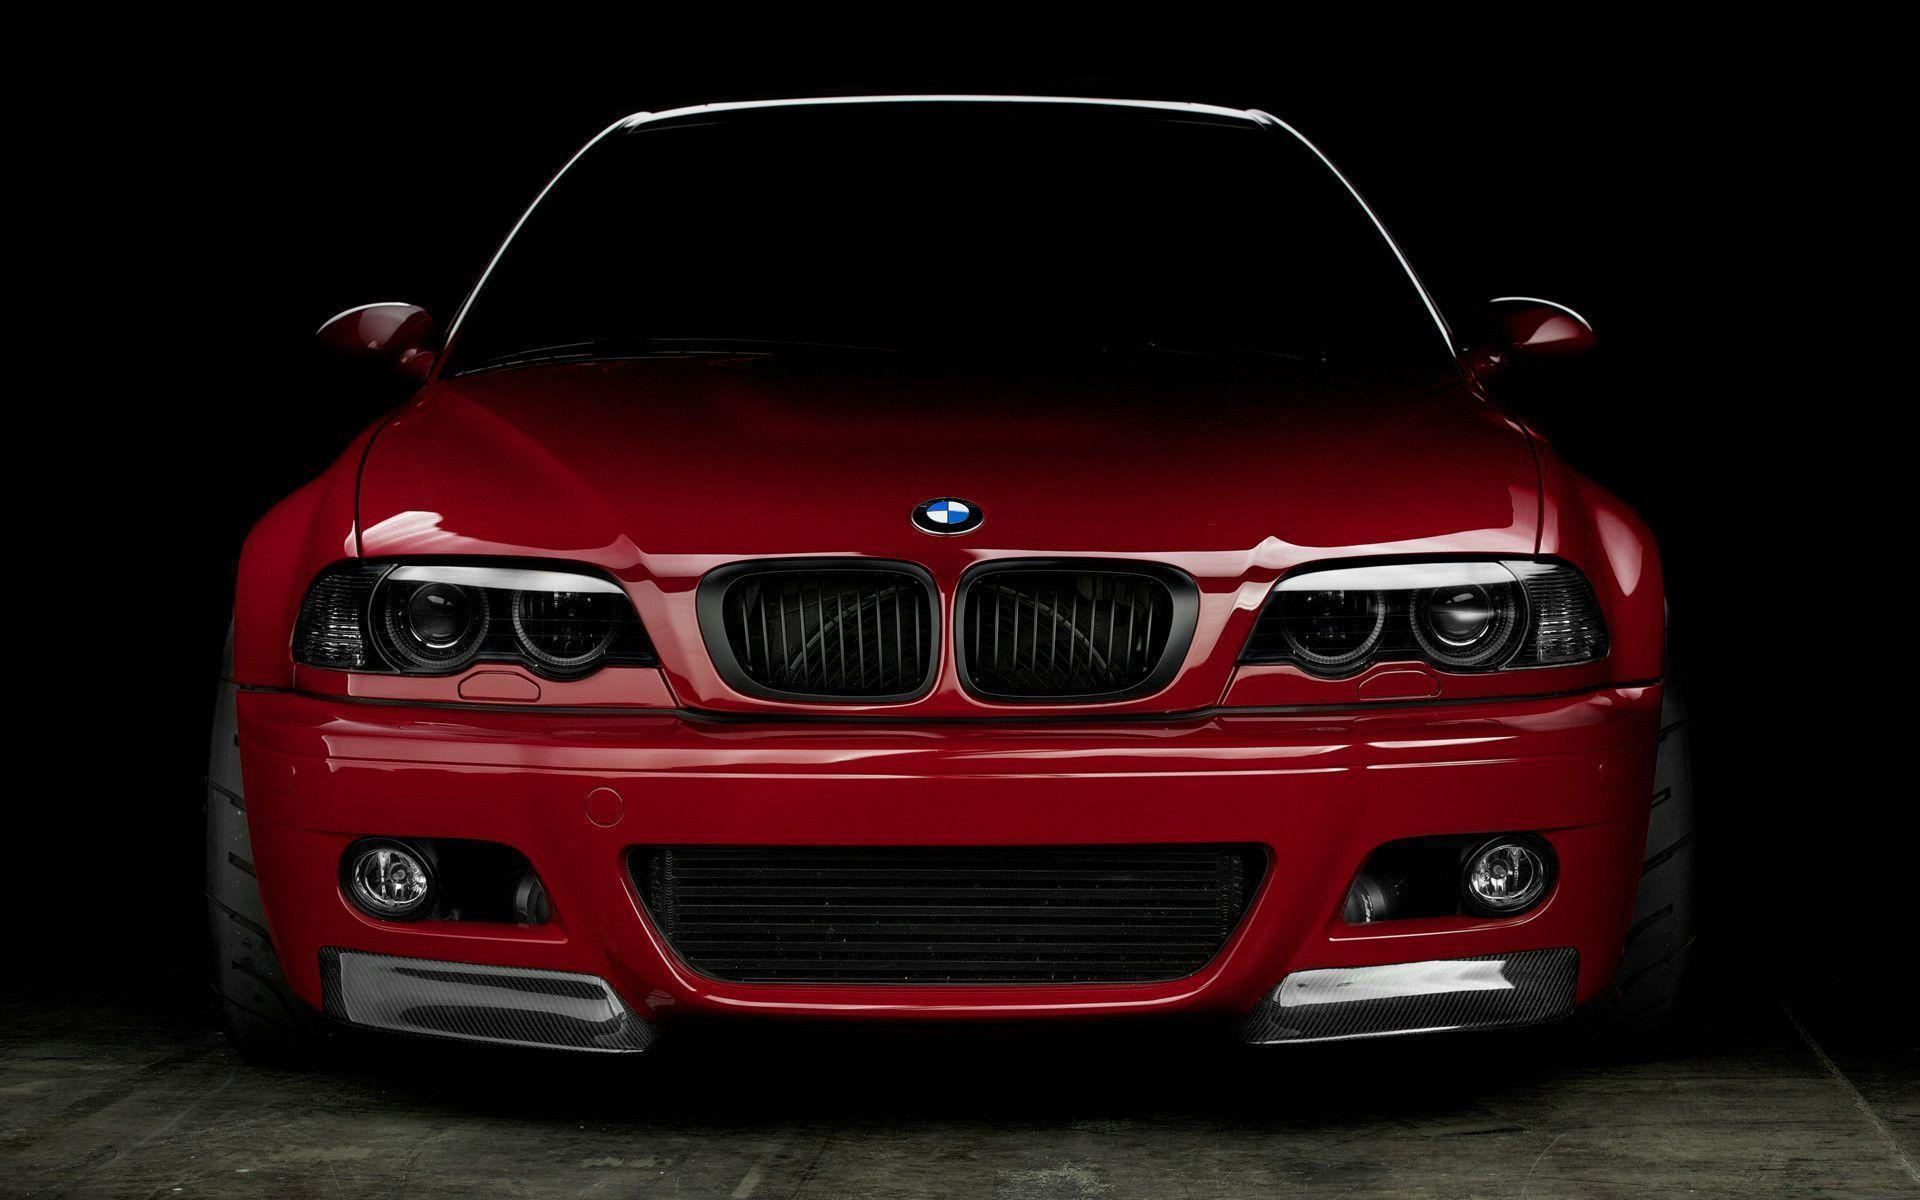 Bmw 325ci M Sport Edition E46 Wallpapers Car Wallpapers Hd: BMW E46 Wallpapers